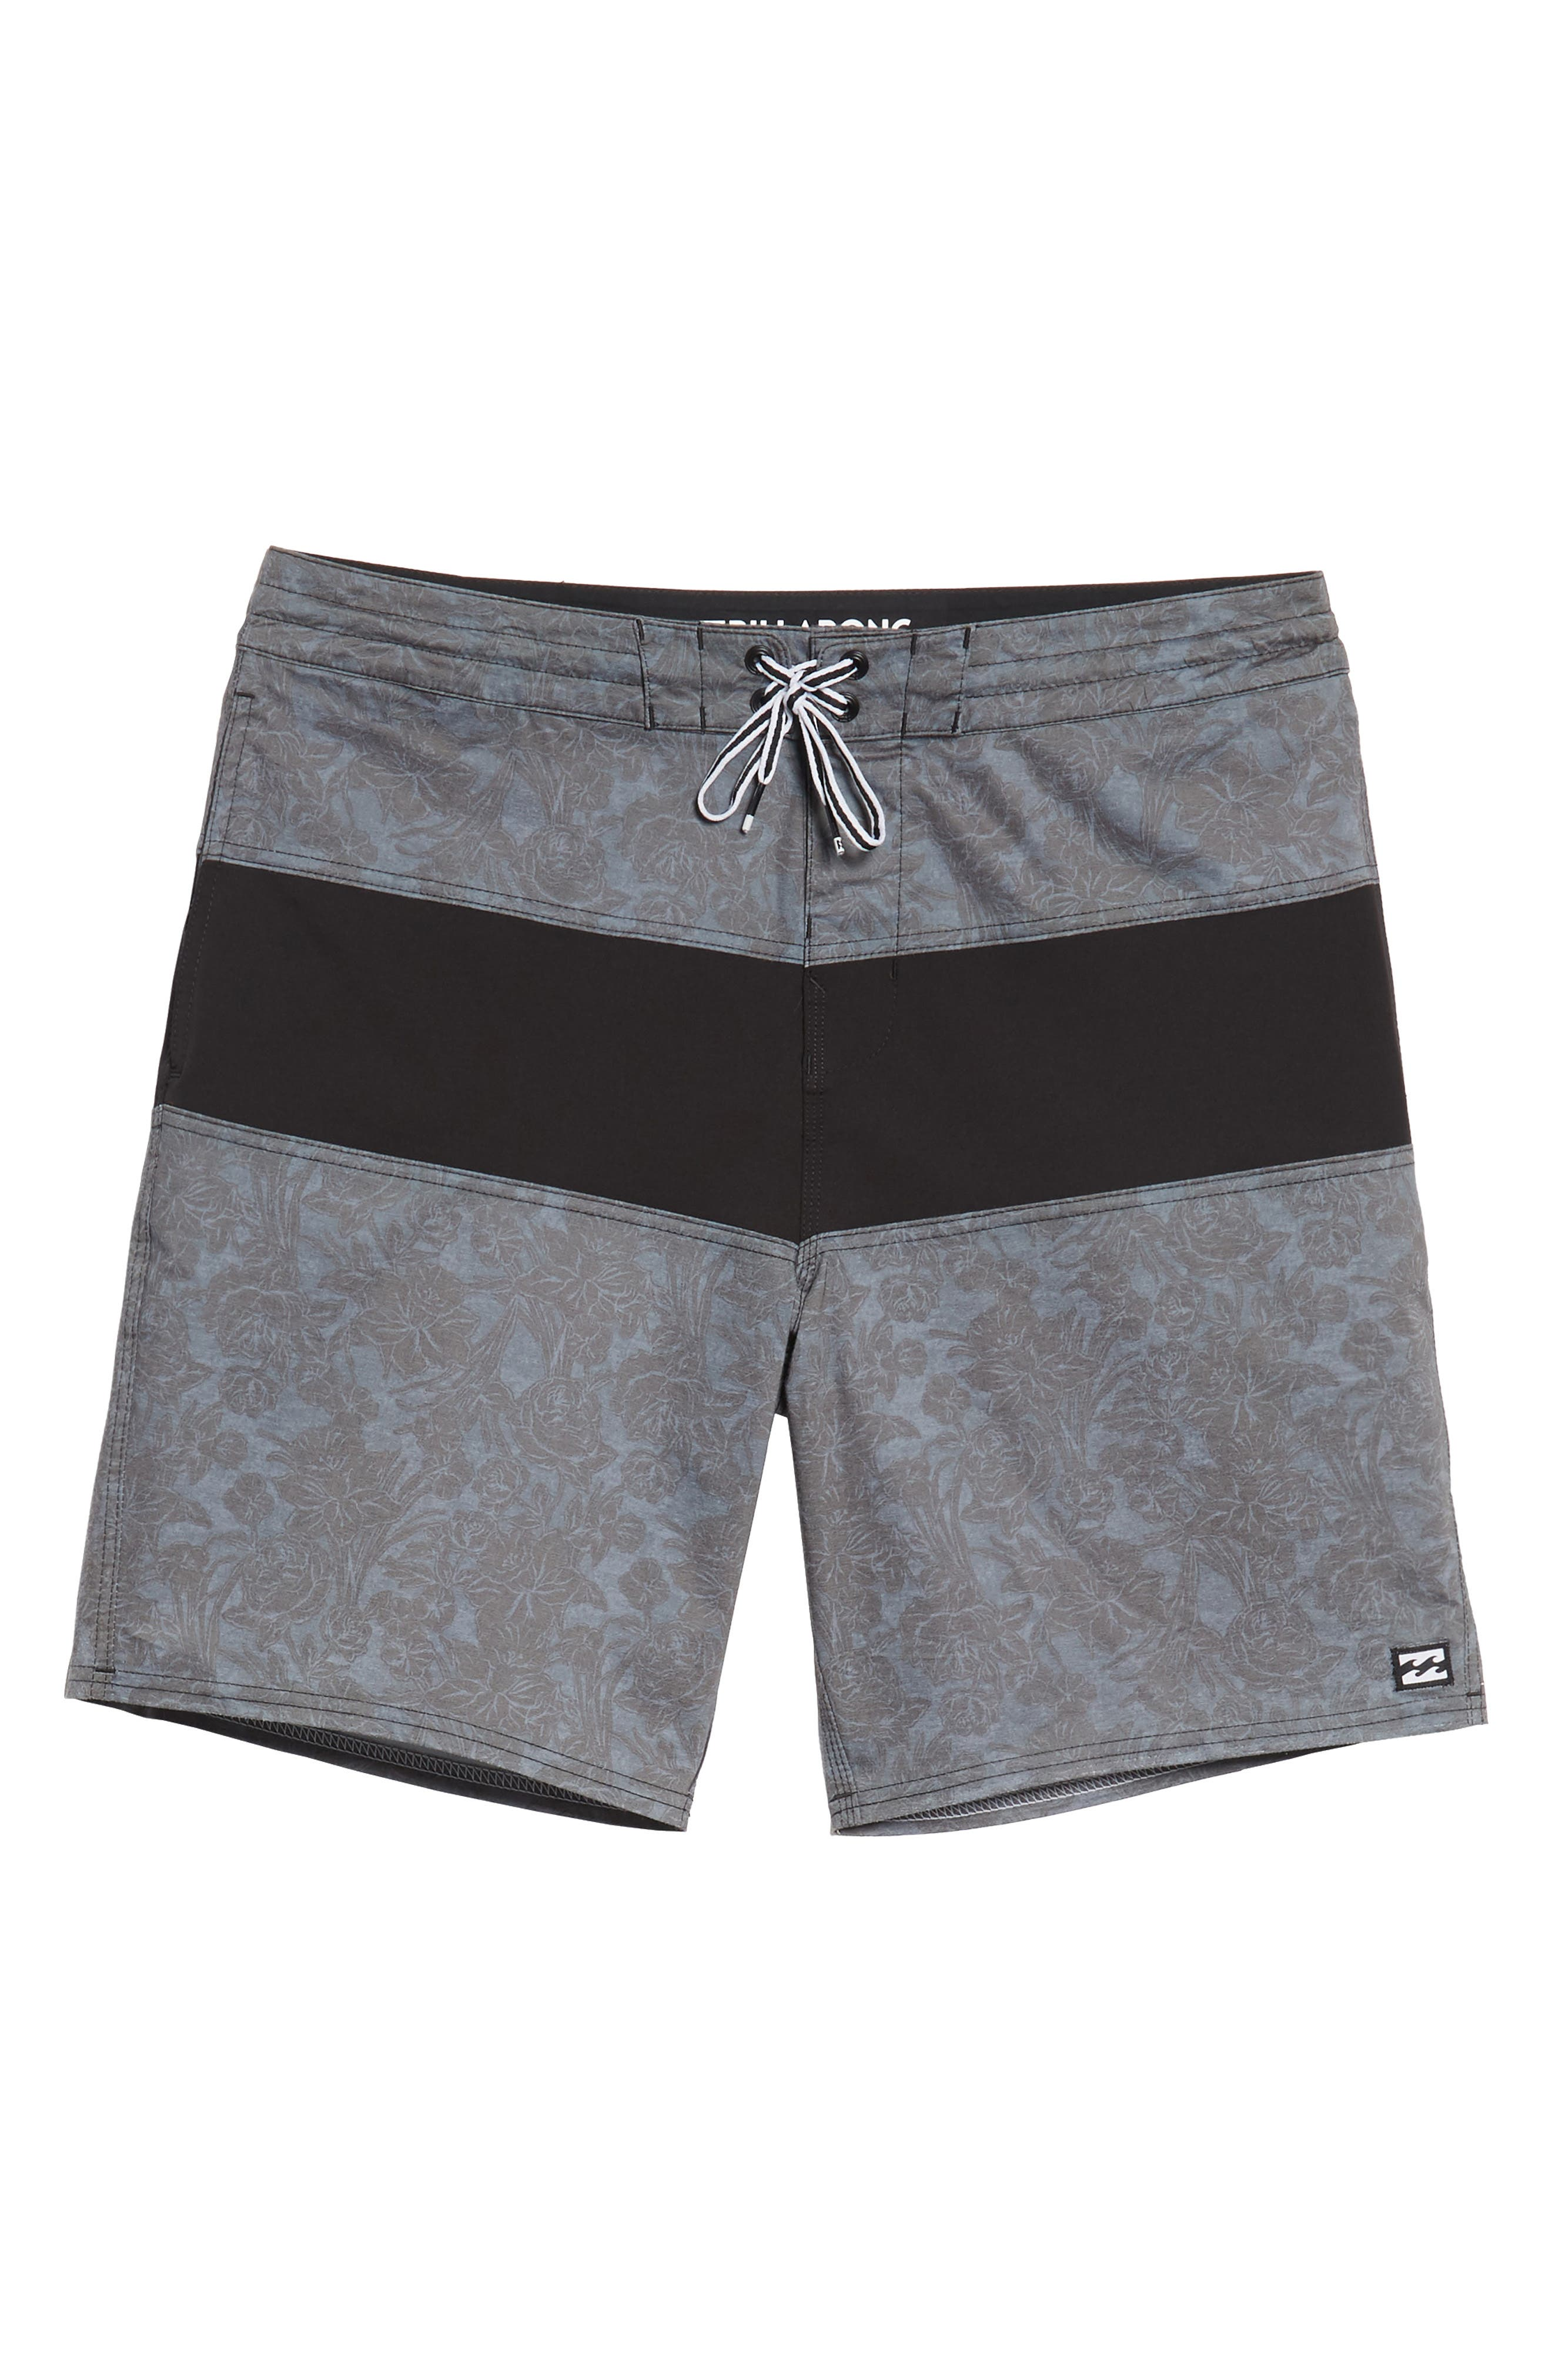 Tribong LT Board Shorts,                             Alternate thumbnail 16, color,